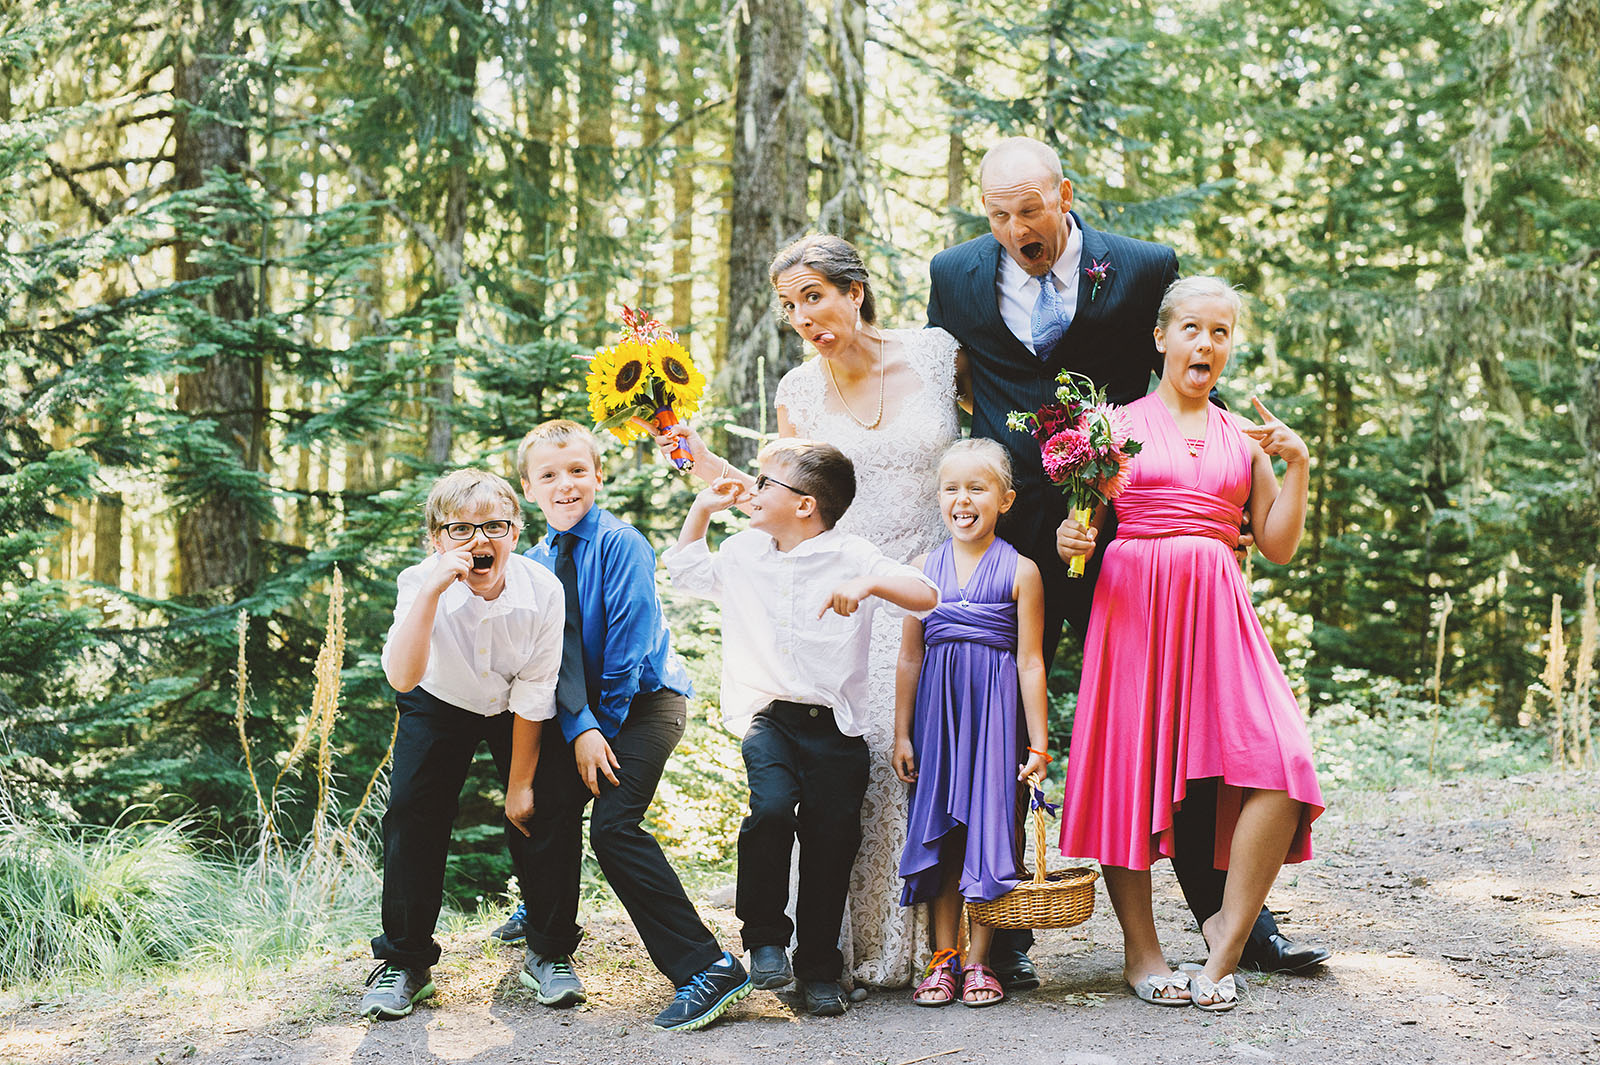 Family photos gone silly | Mazama Lodge Wedding